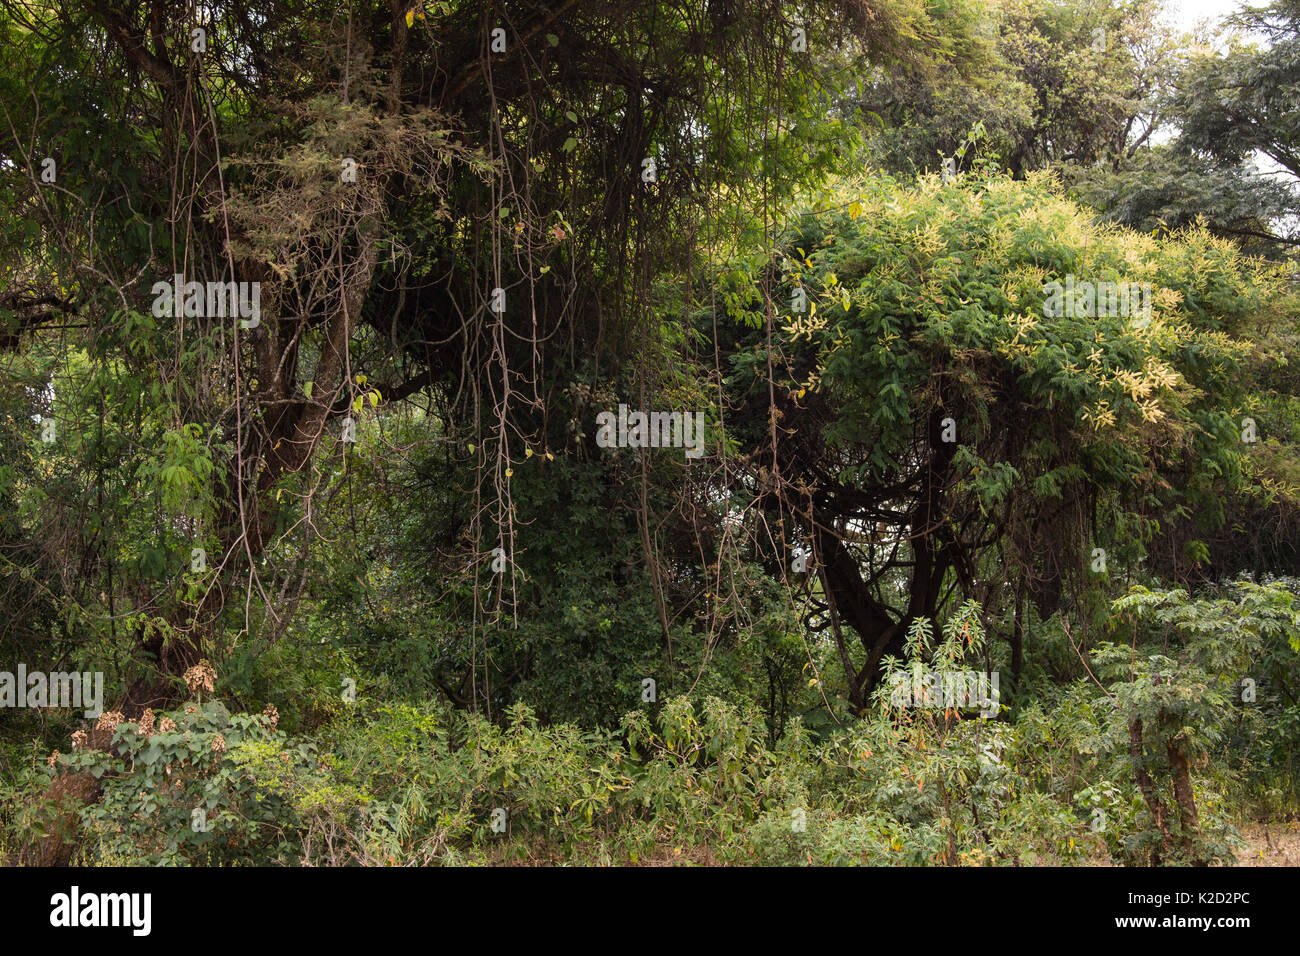 'Church forest', area of ancient forest, preserved by priests of the Ethiopian Orthodox Tewahedo Church, Tara Gedam, Lake Tana Biosphere Reserve, Ethiopia. December 2013. - Stock Image